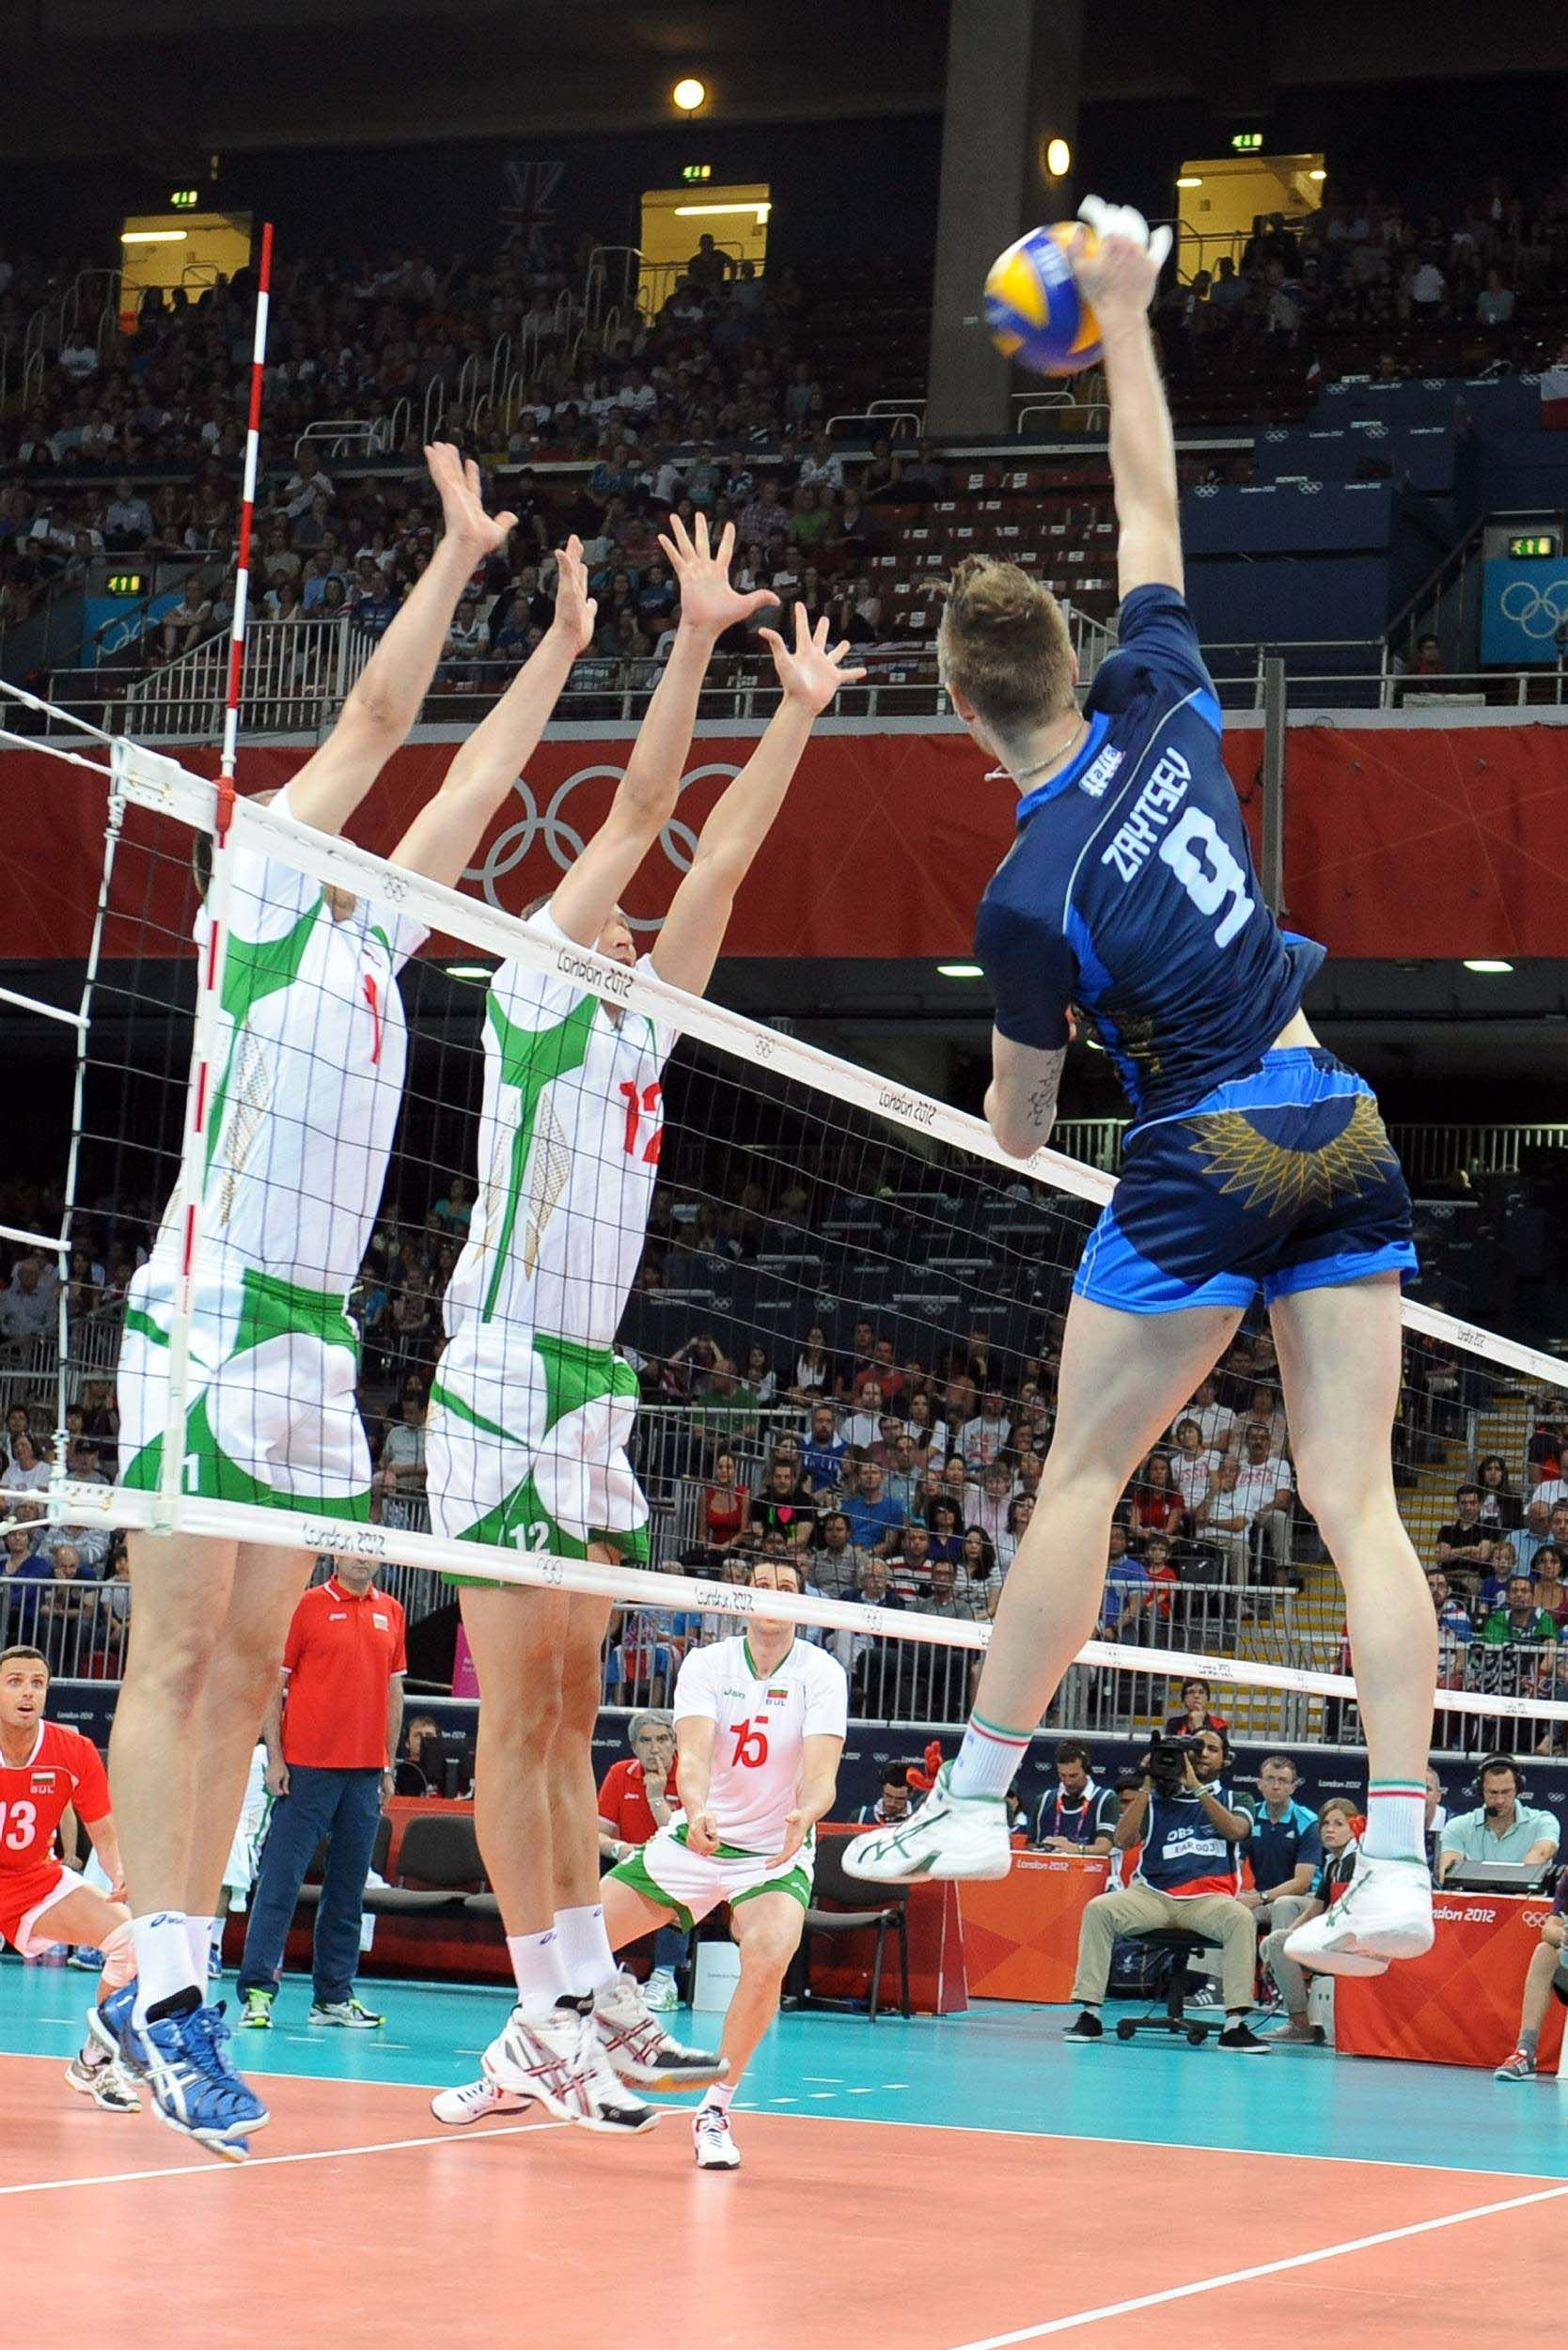 Italy S Ivan Zaytsev Spikes The Ball In The Match Against Bulgaria During The 2012 London Olympics Volleyball Photography Sport Volleyball Volleyball Players